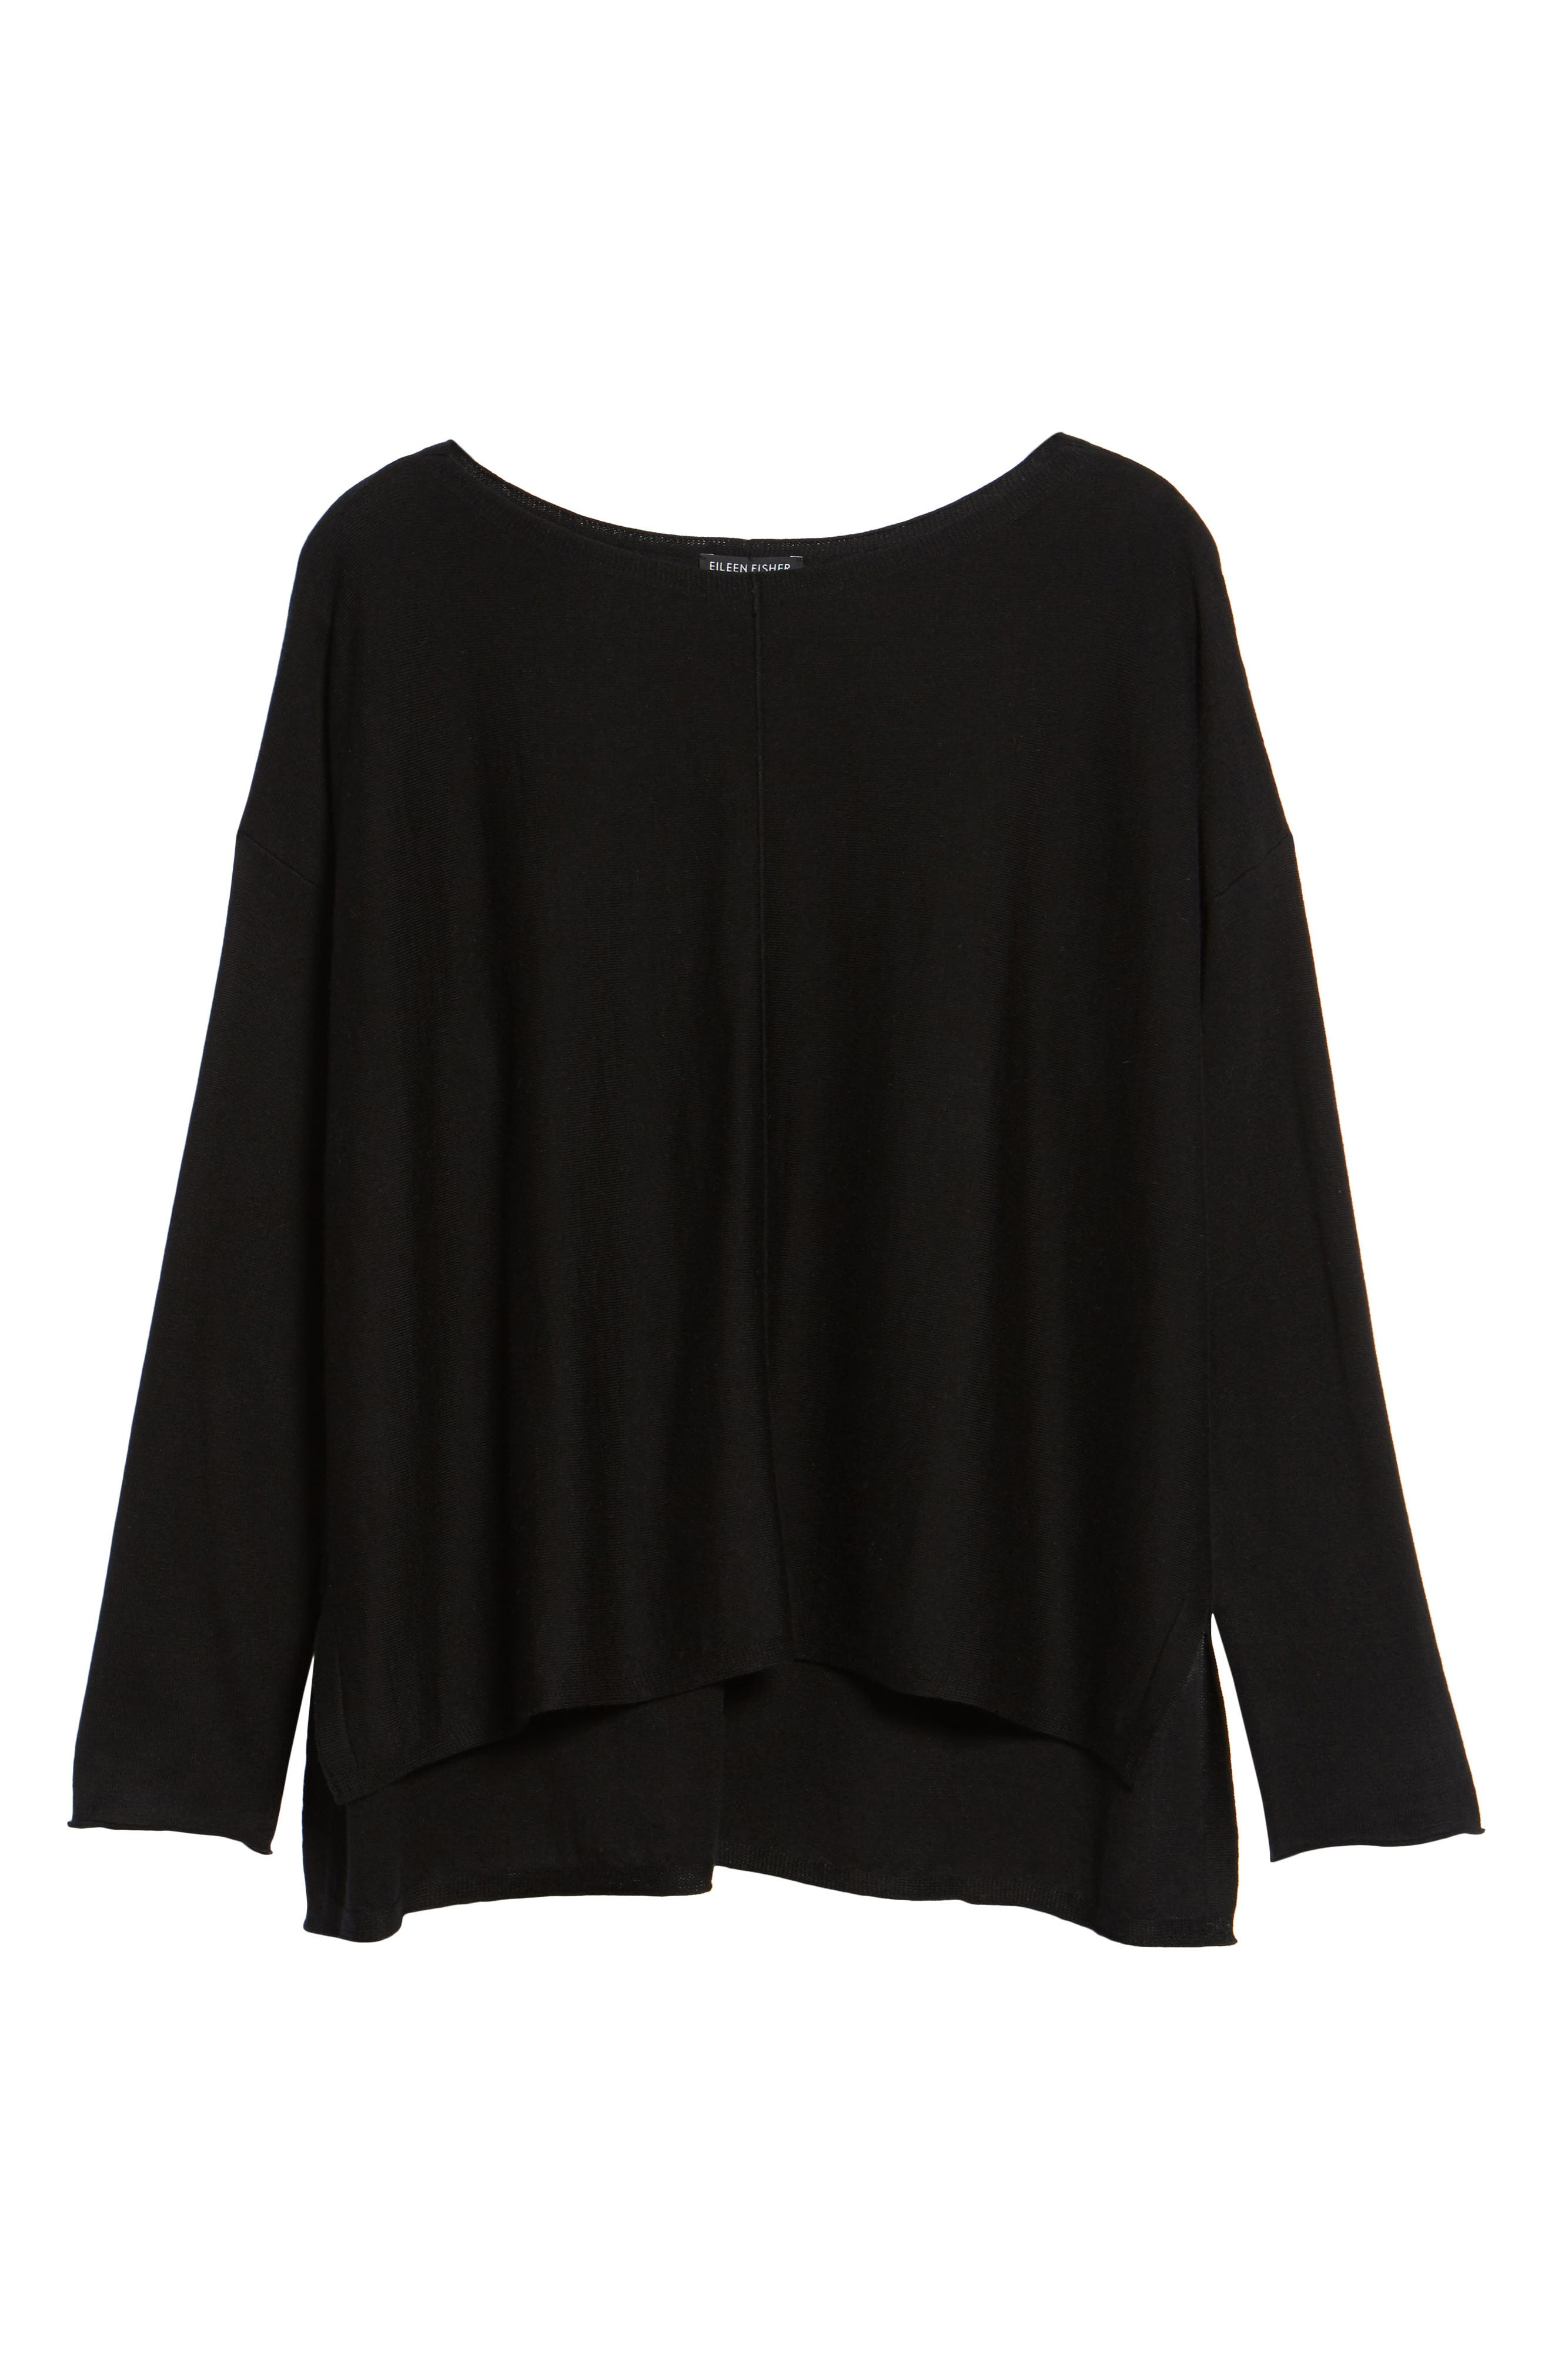 Tencel<sup>®</sup> Lyocell Blend High/Low Sweater,                             Alternate thumbnail 6, color,                             001